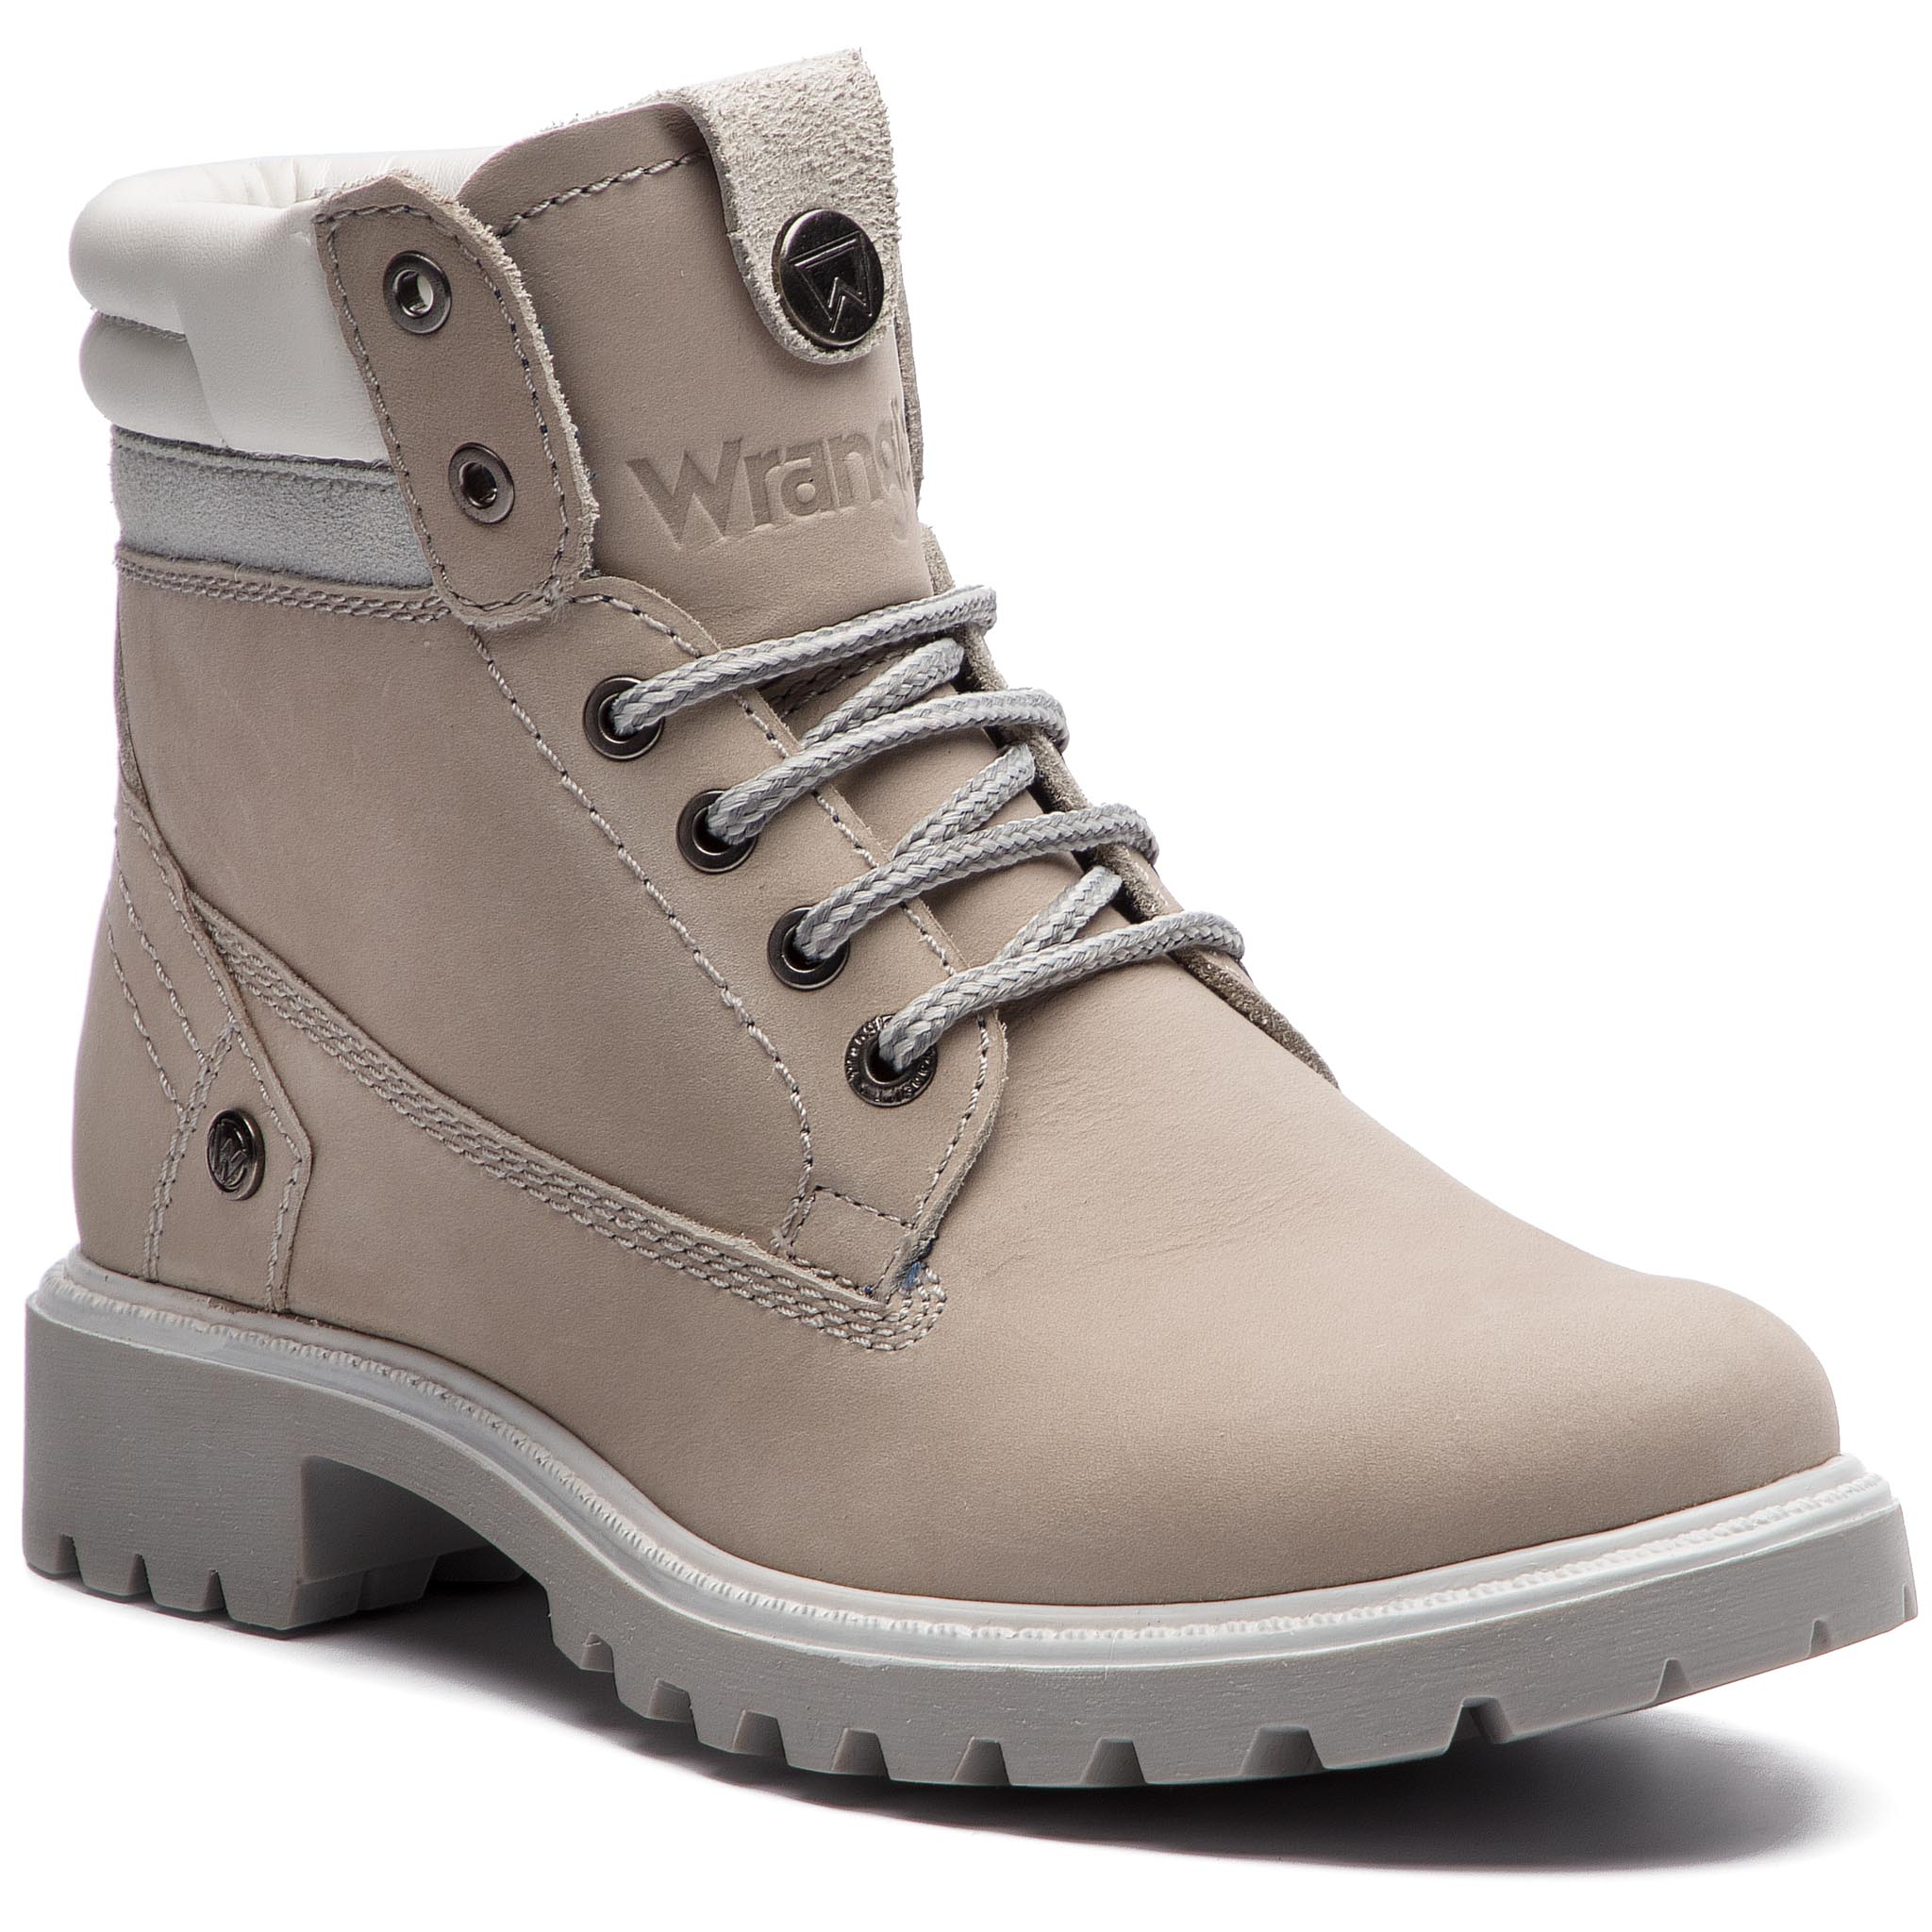 Trappers WRANGLER - Creek WL182500 Ice 91